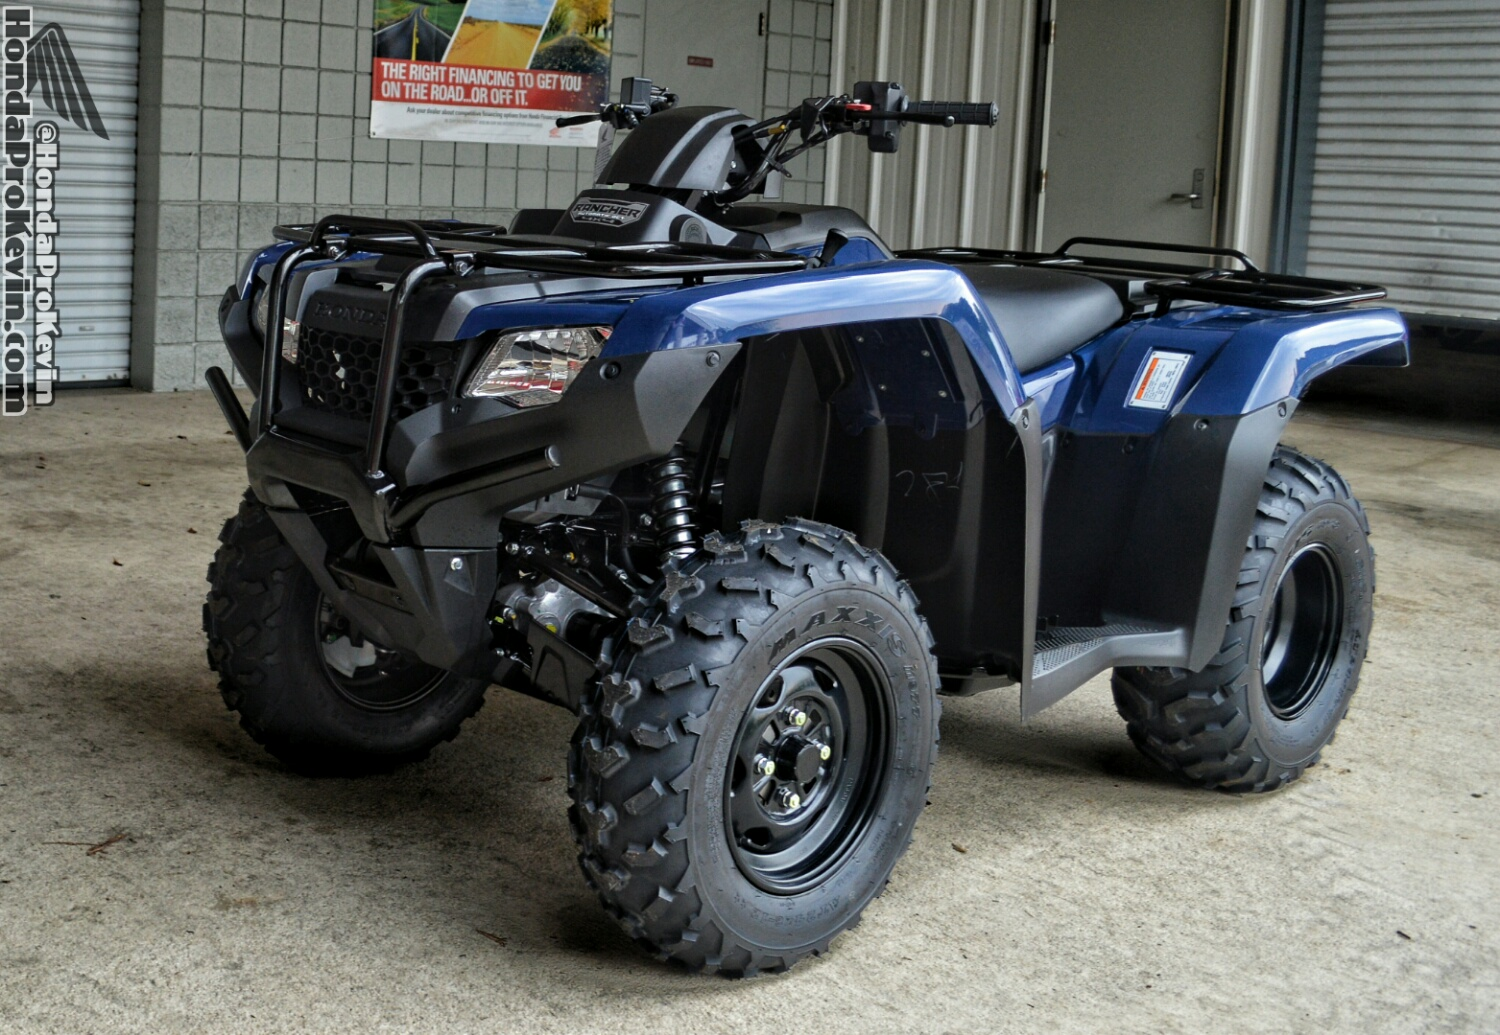 2016-Honda-Rancher-Four-Wheeler-Review-Specs-Price-Price-Colors-Horsepower-Performance-Rating-4x4-ATV-Quad